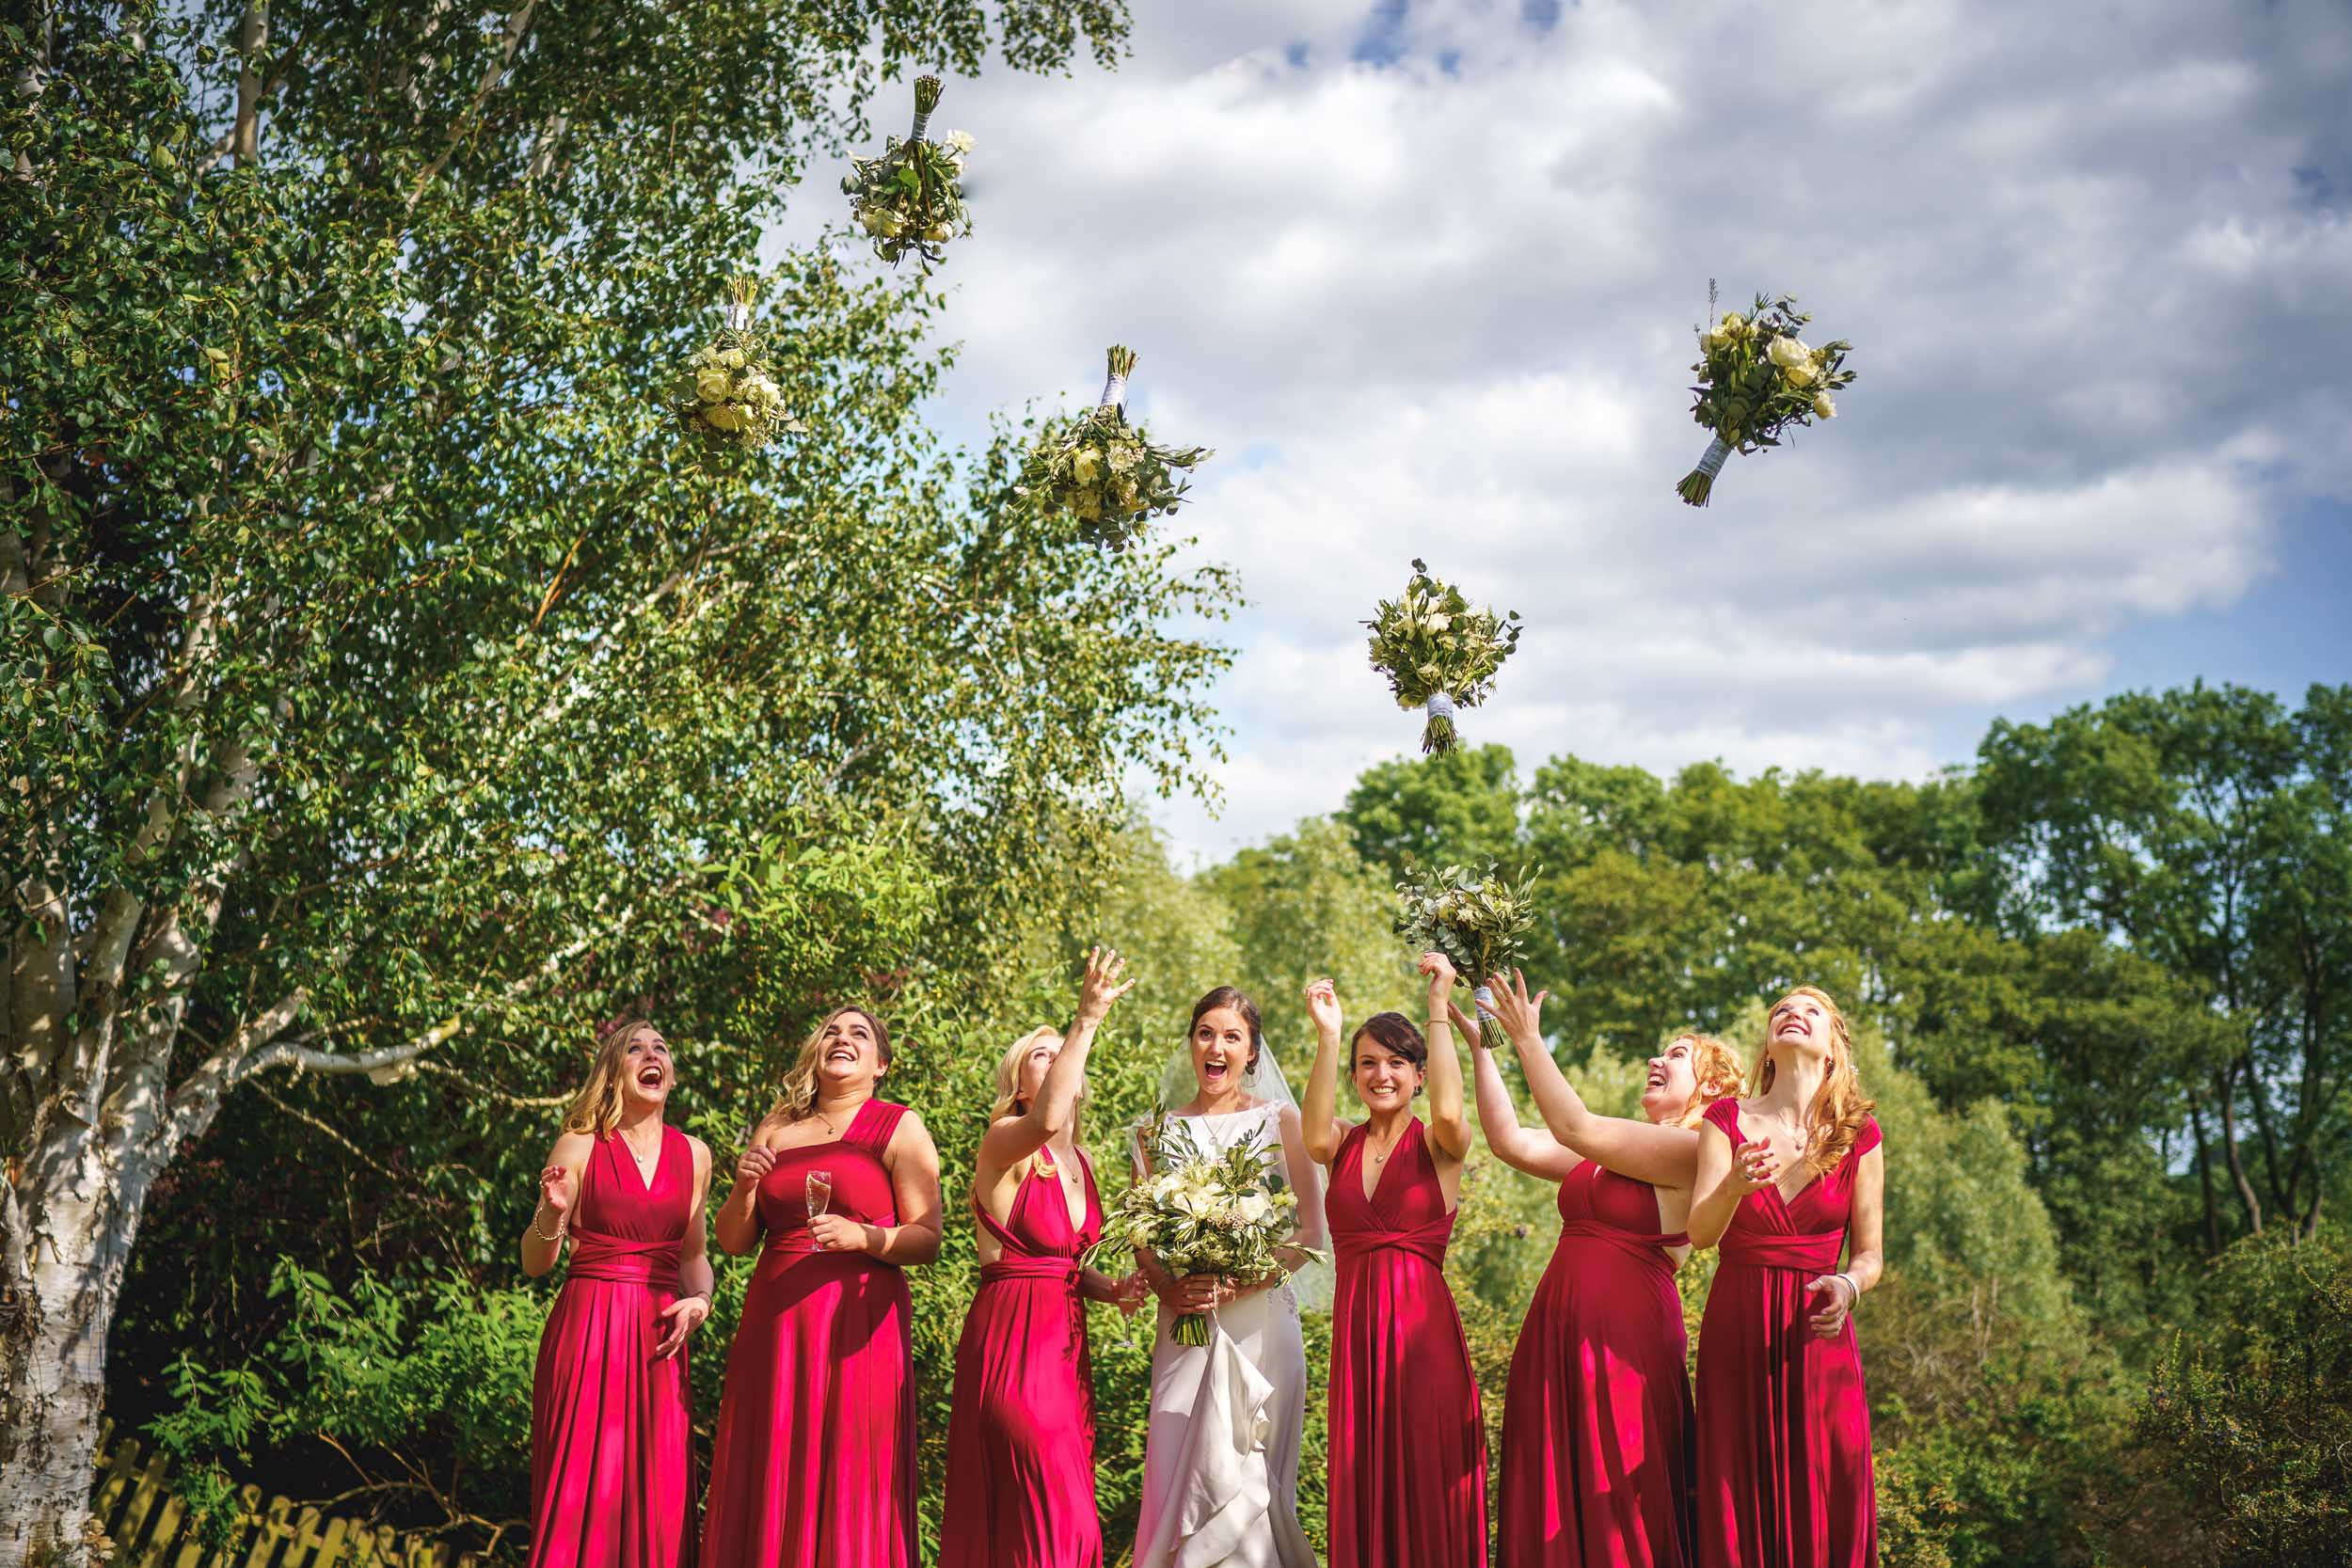 Wedding Photographers in Herefordshire, Herefordshire Wedding Photography